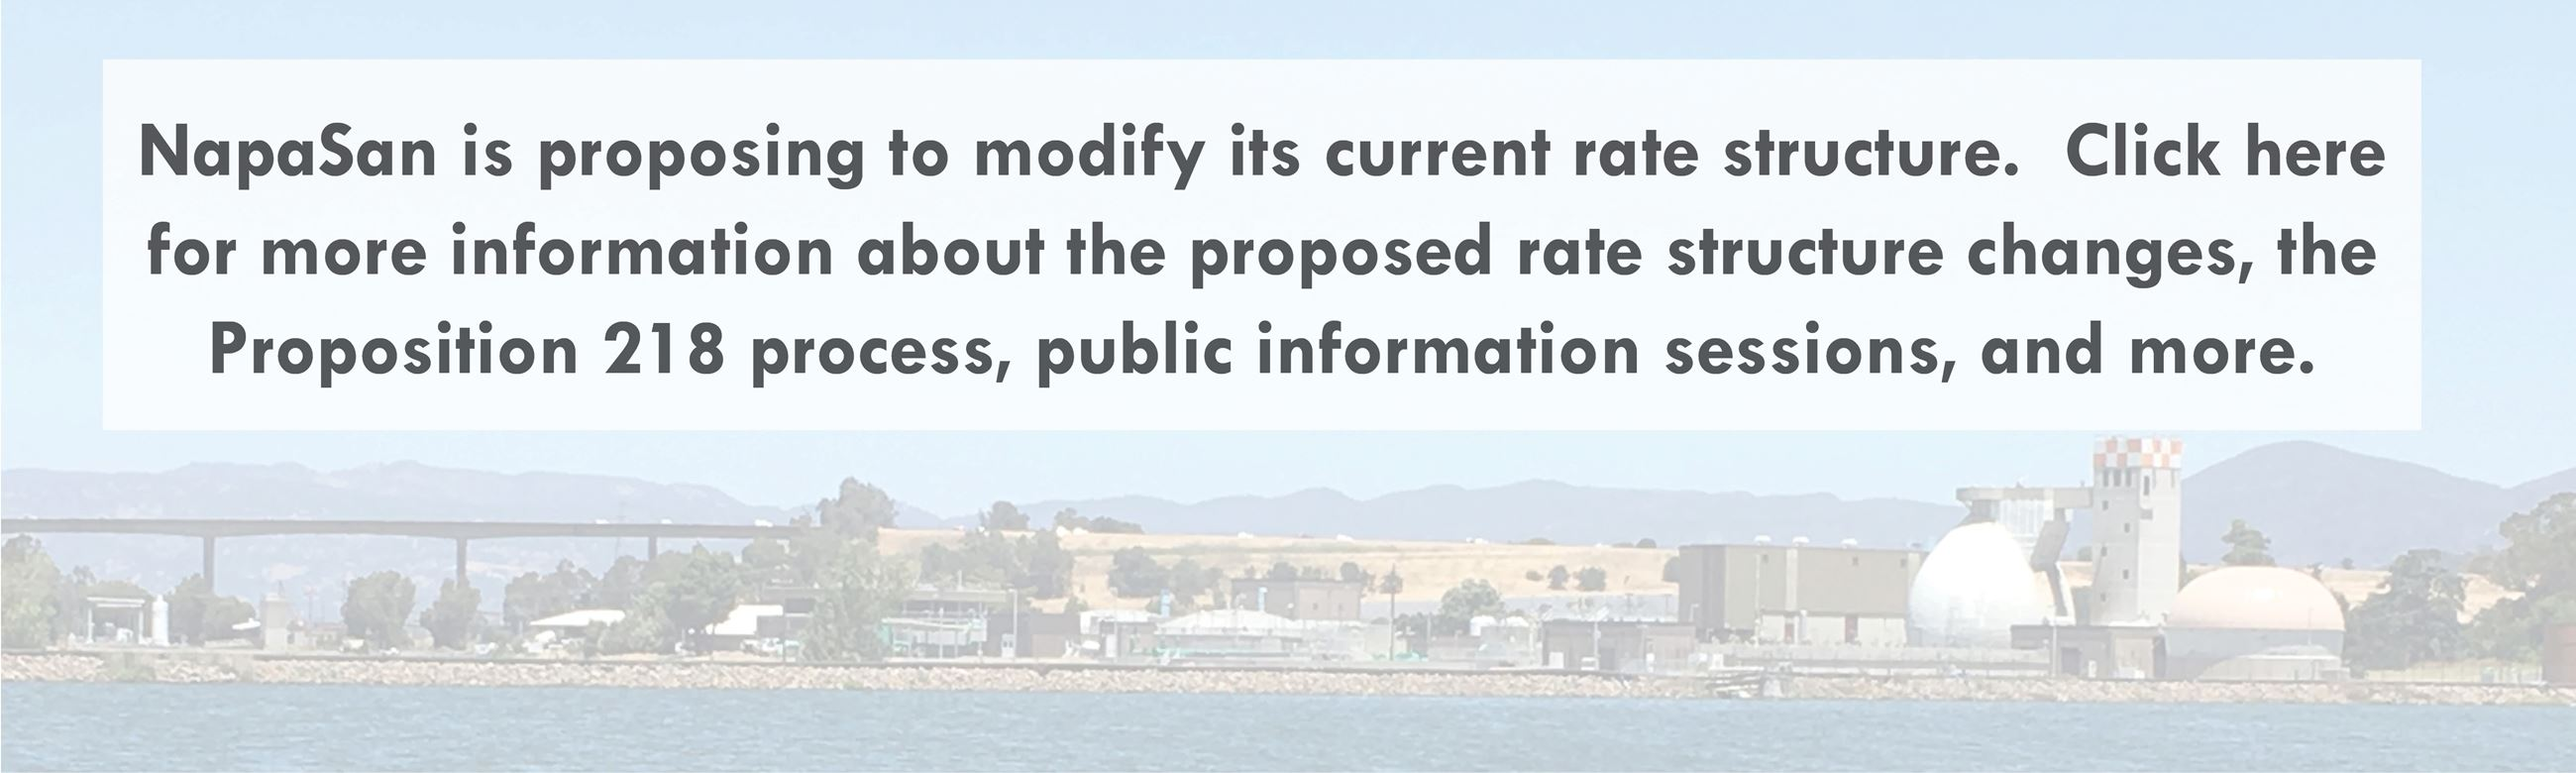 Click here for information about NapaSan's proposed rate structure changes.